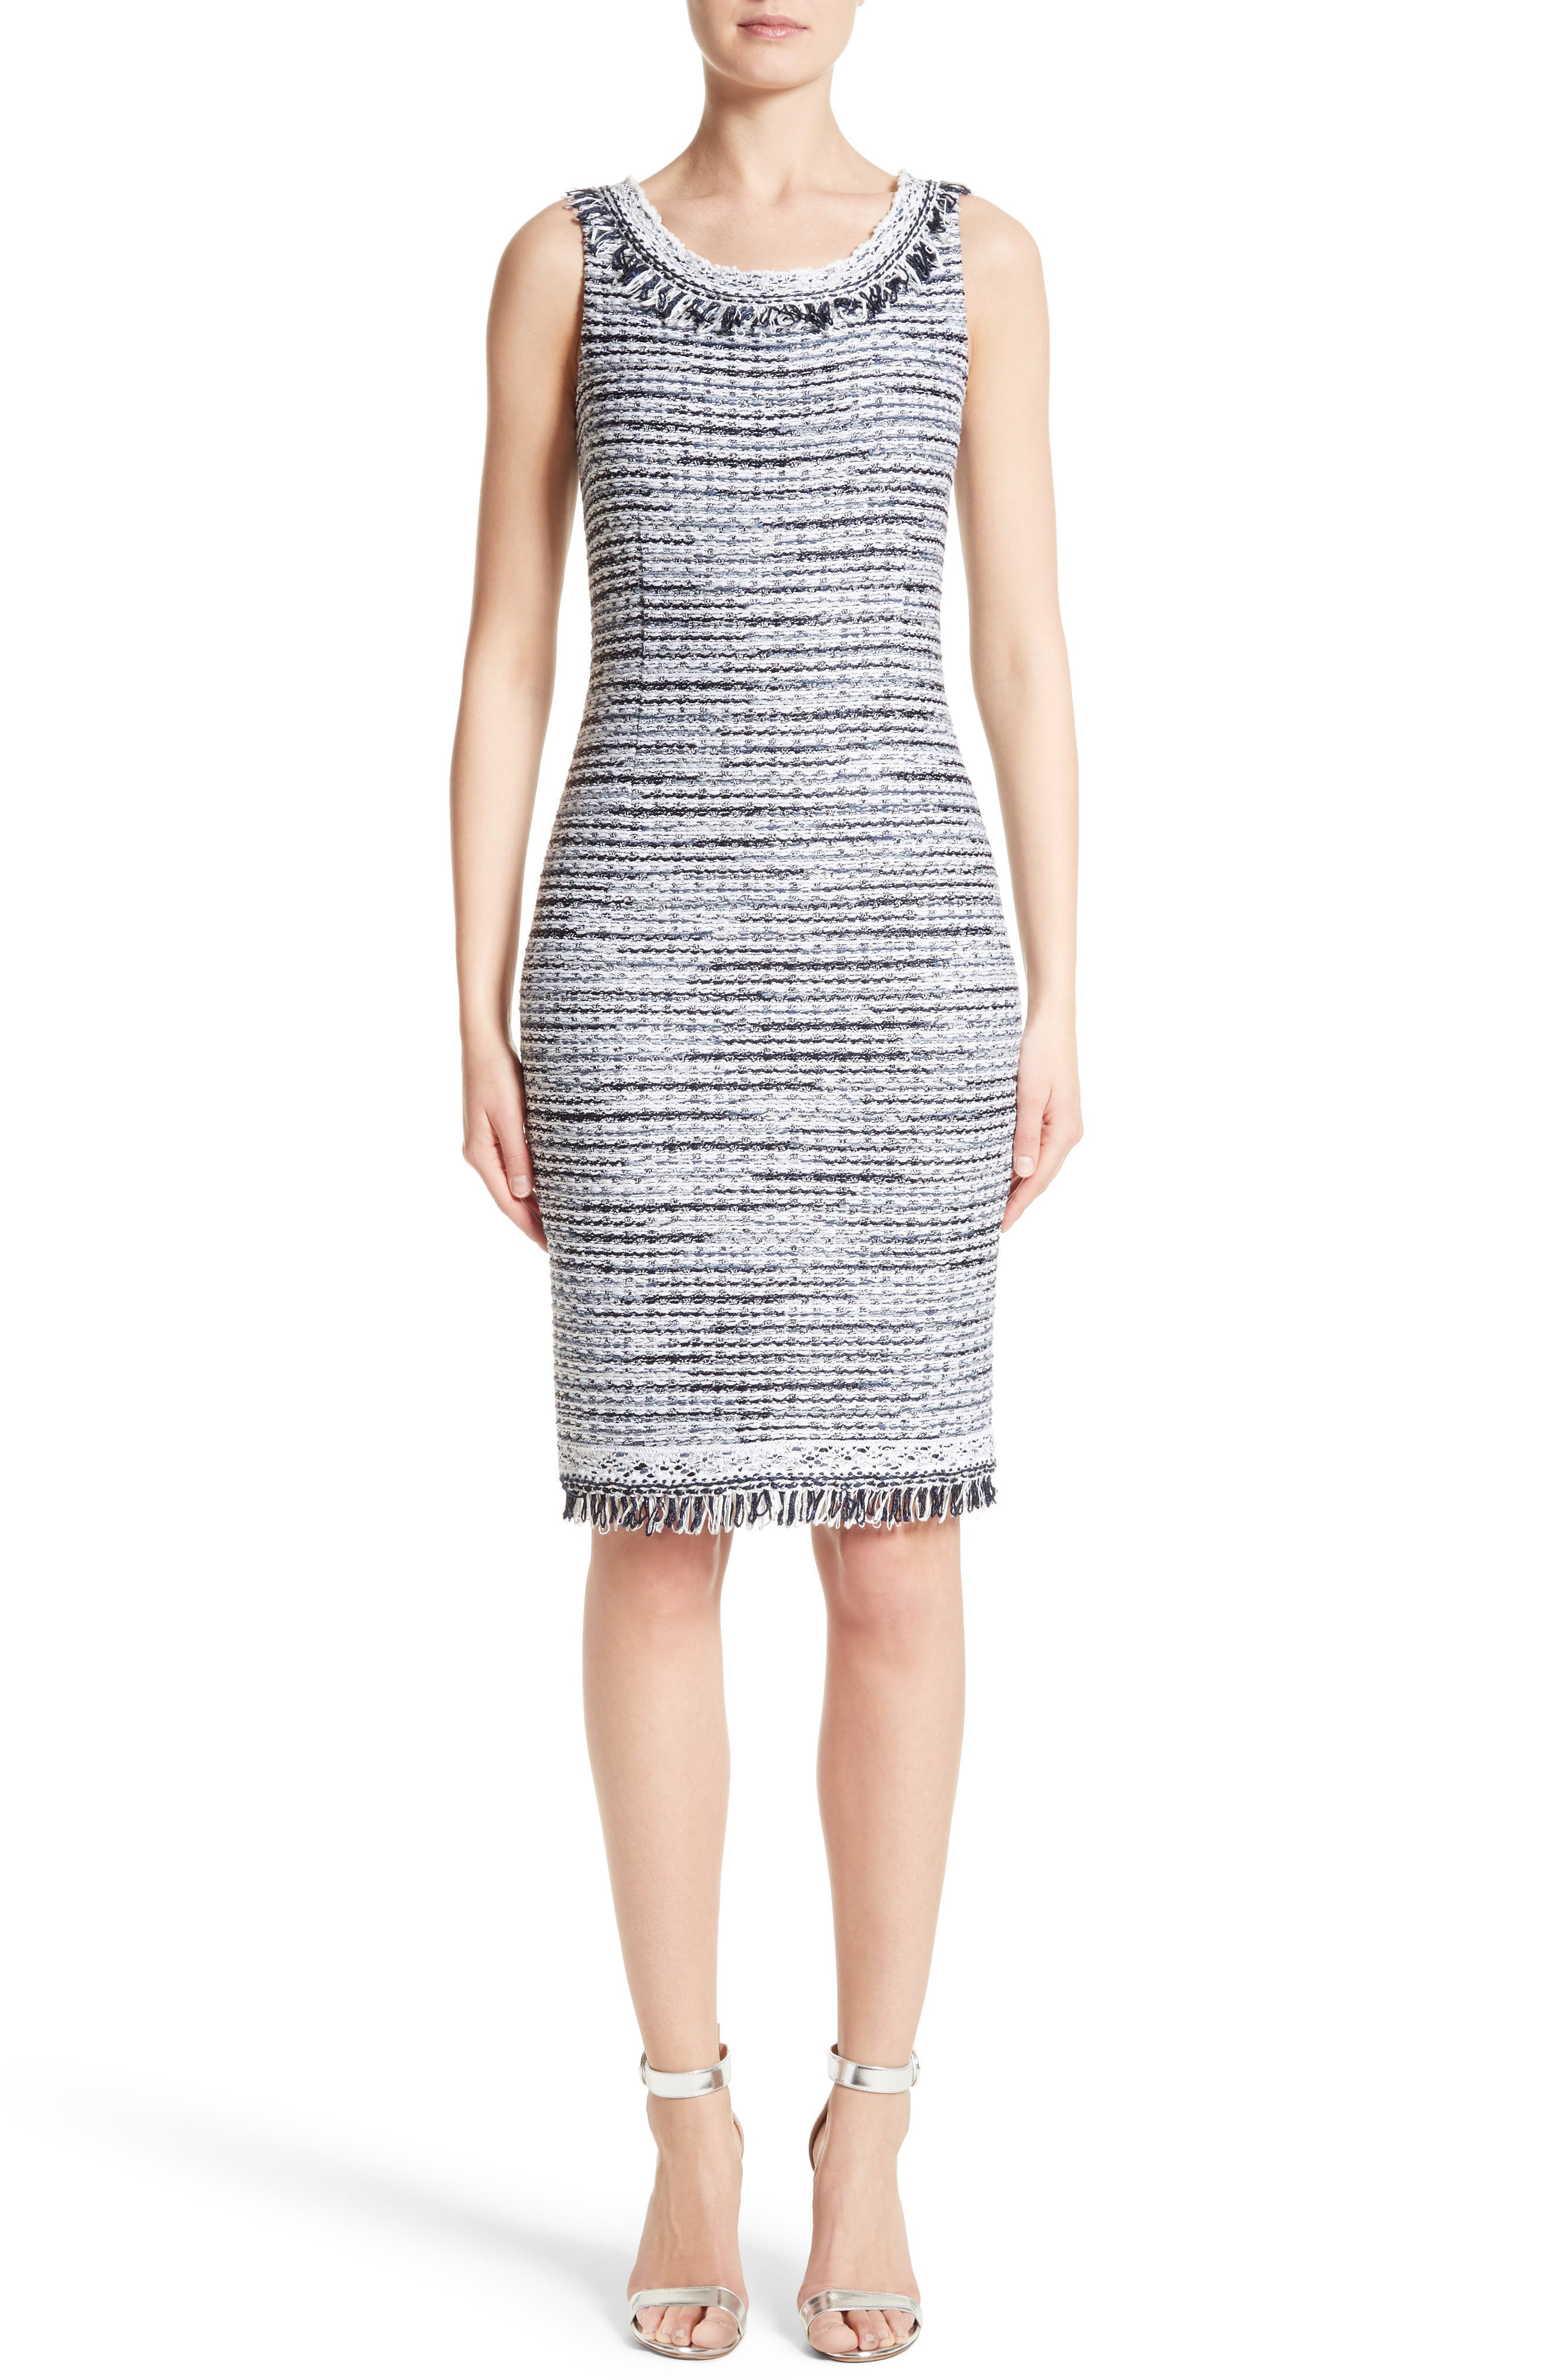 Alternate Image 1 Selected - S. John Collection Tanya Knit Pencil Dress